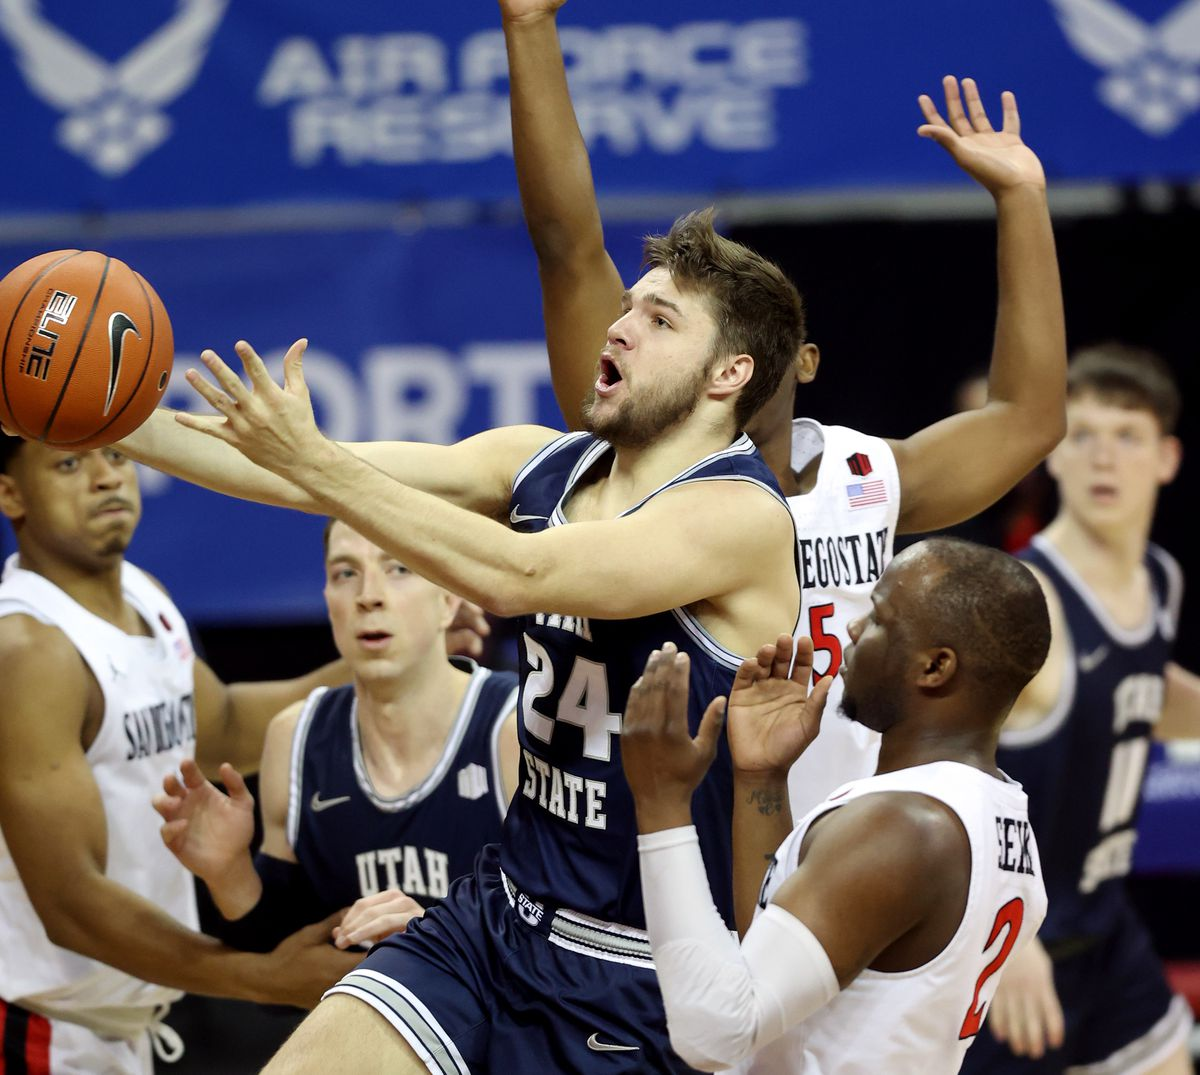 Utah State Aggies guard Rollie Worster (24) drives to the hoop as Utah State and San Diego State play in the championship game of the Mountain West Tournament at the Thomas & Mack Center in Las Vegas on Saturday, March 13, 2021.